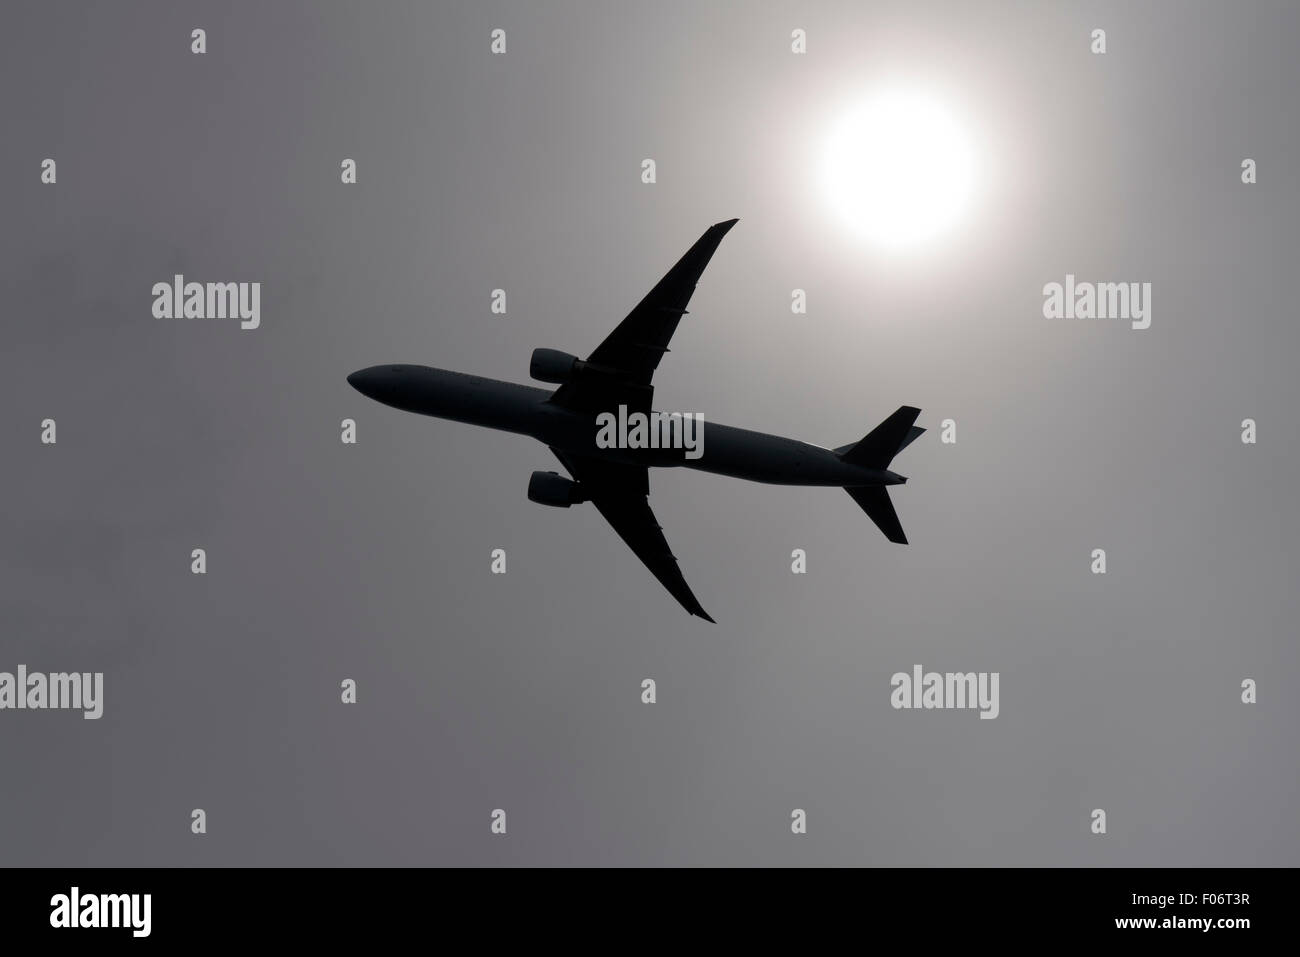 Commercial jet silhouetted by the sun shining through high overcast - Stock Image